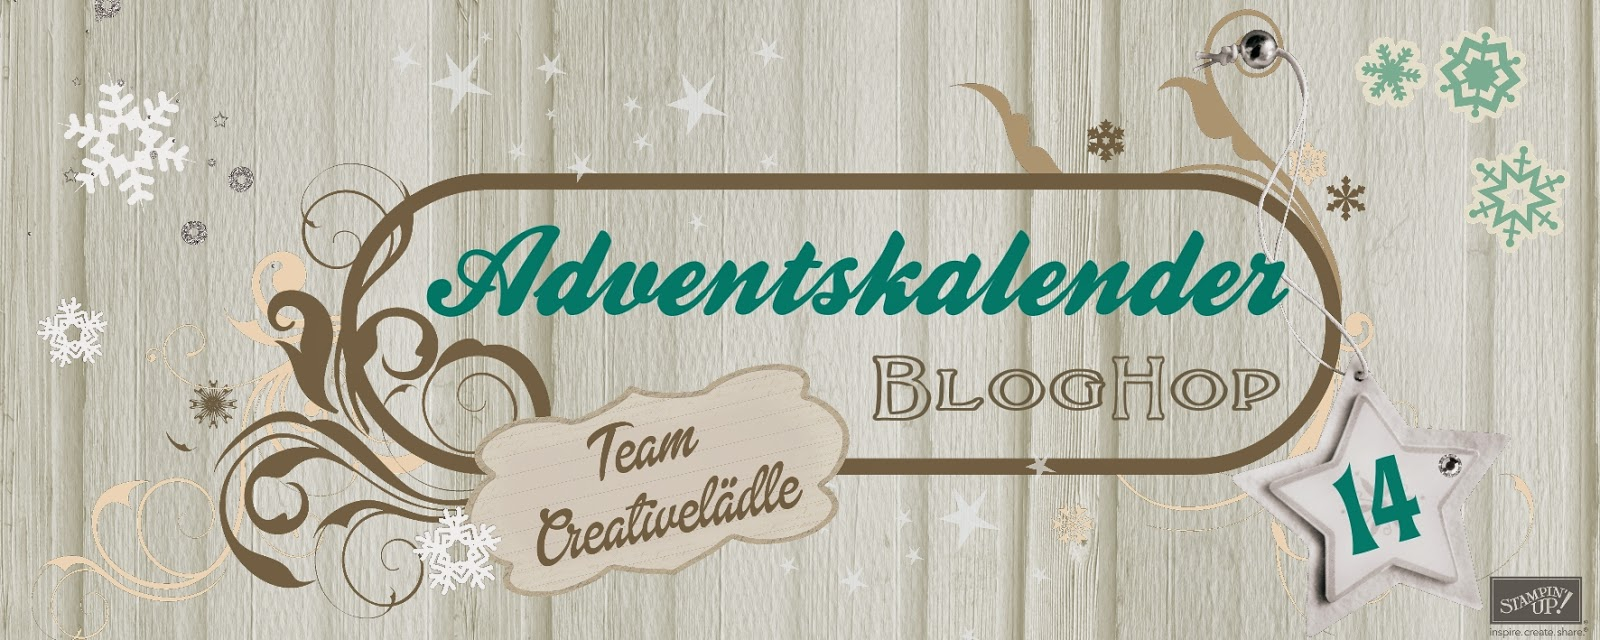 http://creativelaedle.blogspot.com/2014/12/stampin-up-team-adventskalender-14.html